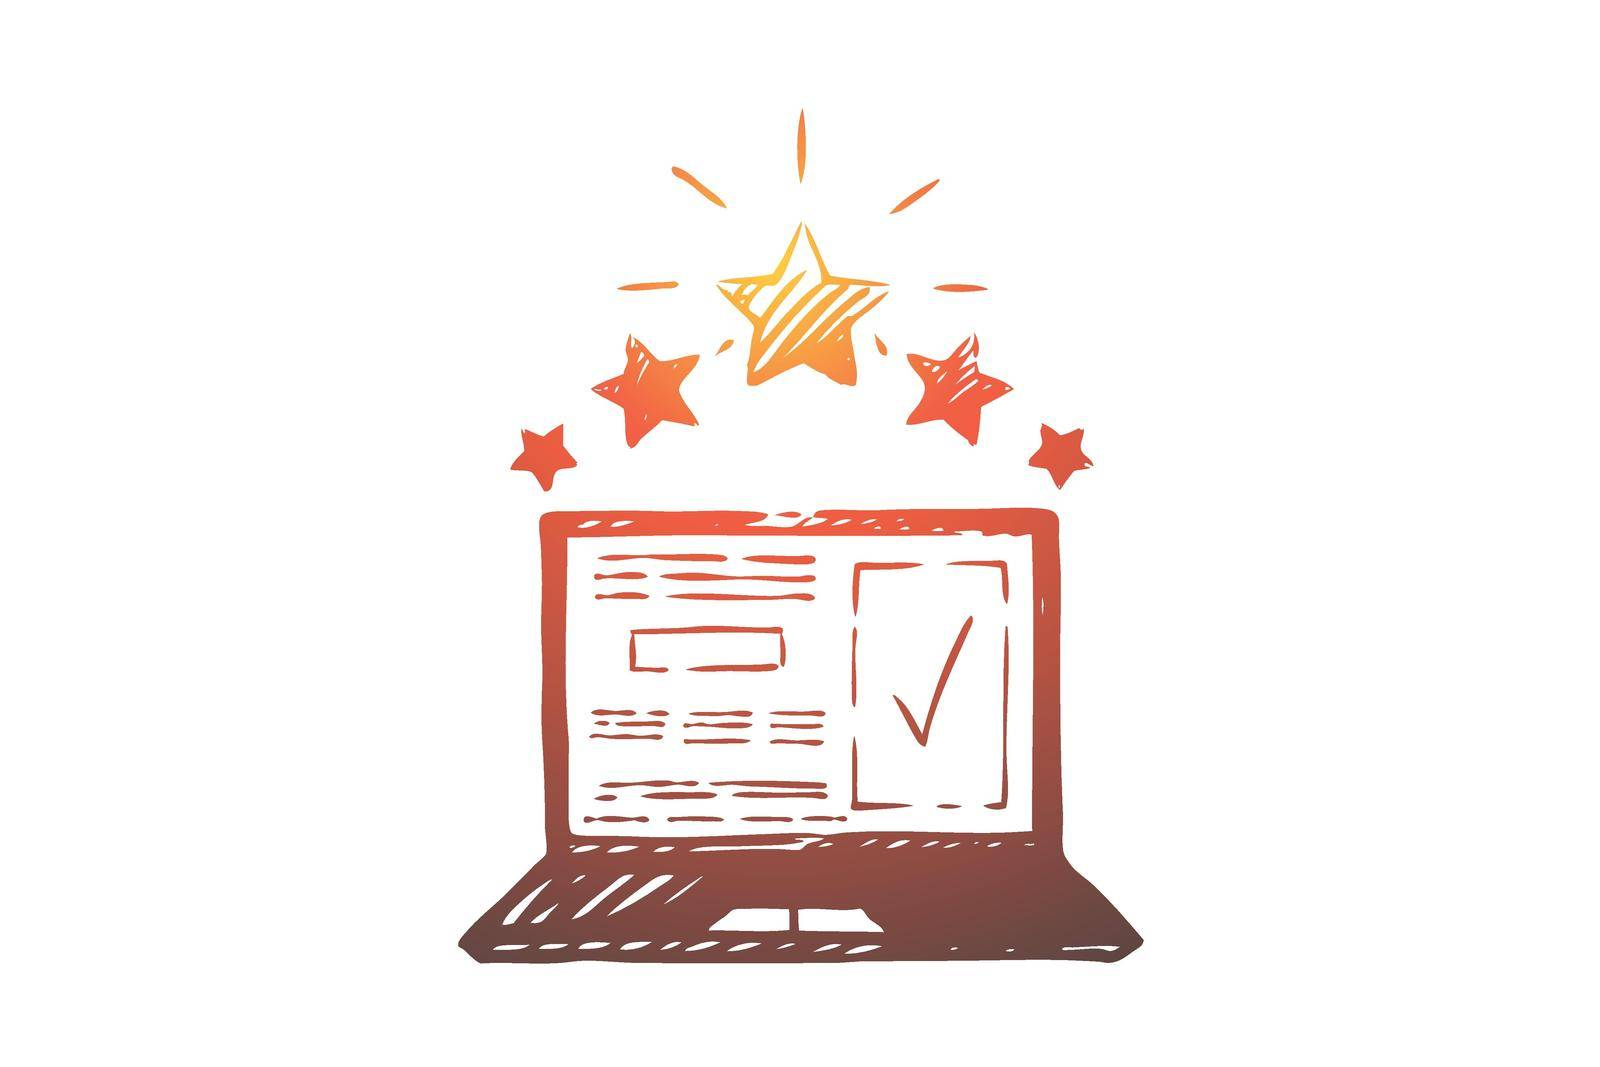 Review, check, rating, vote, opinion concept. Hand drawn isolated vector. by Vasilyeva